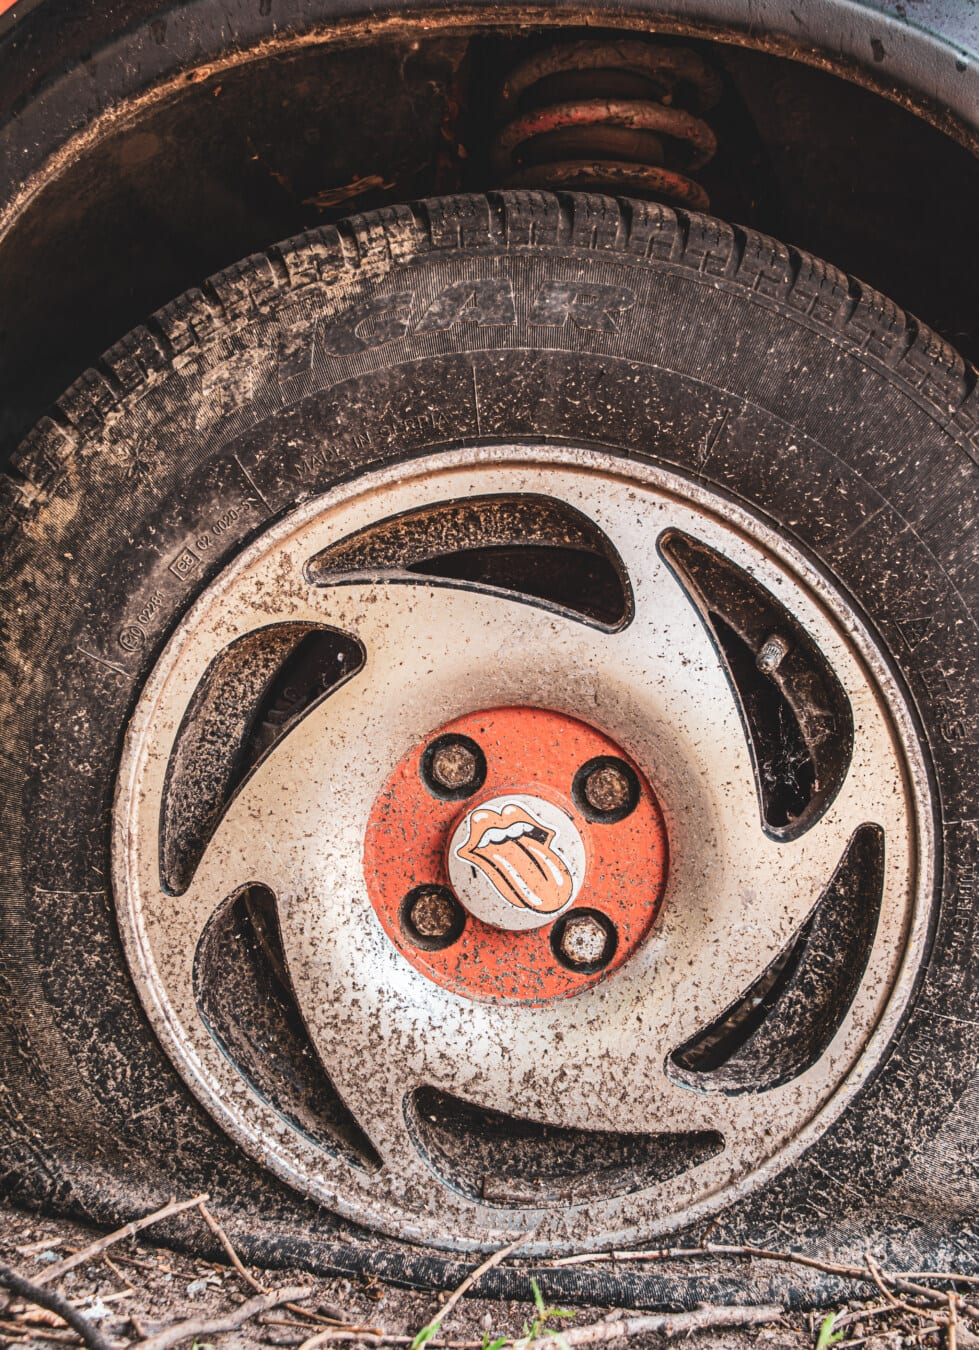 aluminum, tire, old fashioned, damage, car, old, wheel, dirty, rust, steel